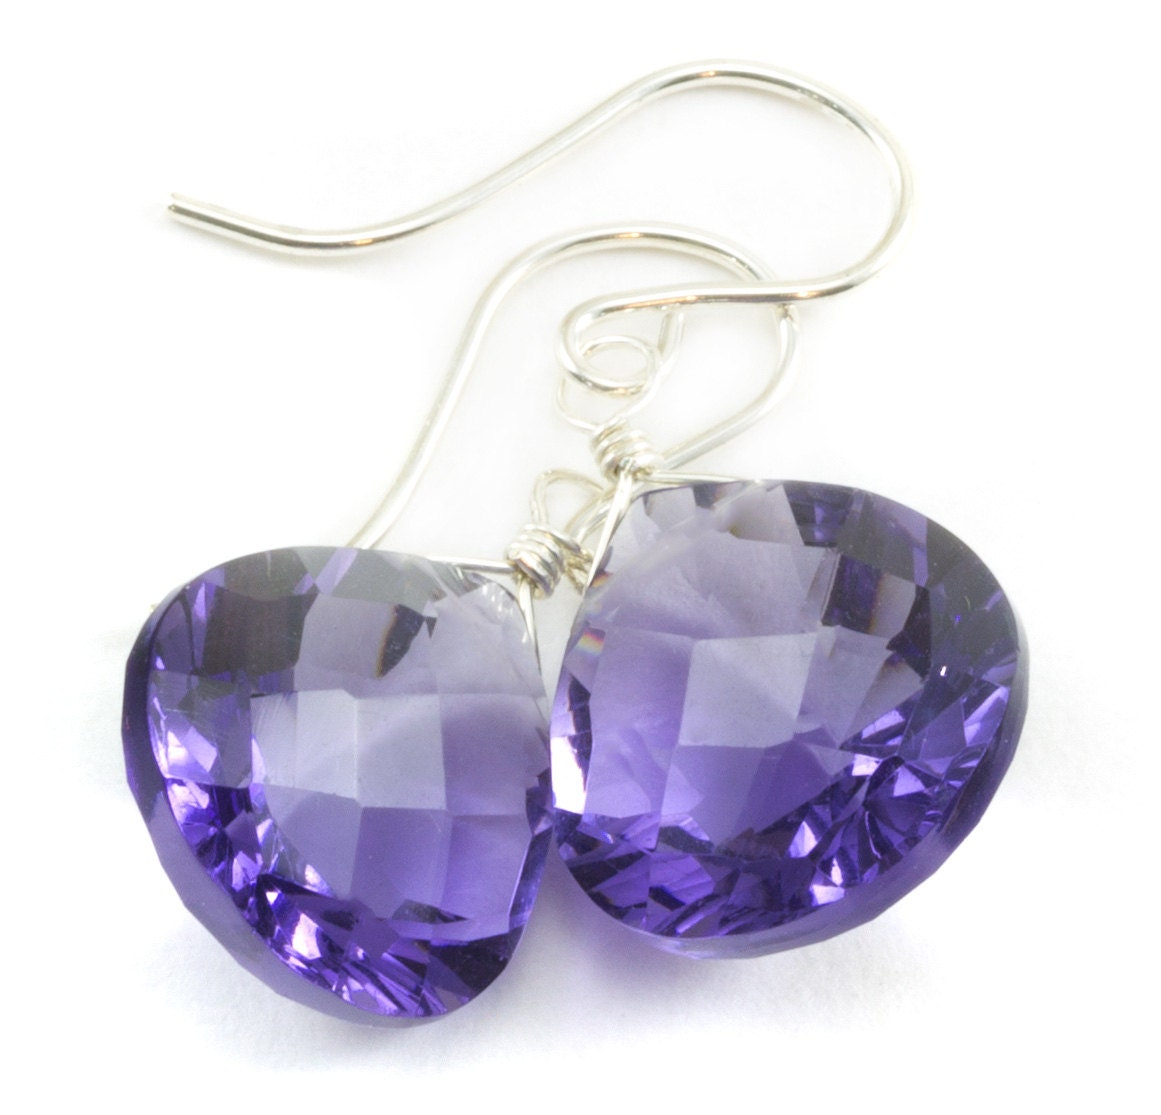 Simulated Tanzanite: Lavender Simulated Tanzanite Earrings Faceted Drop Soft Purple